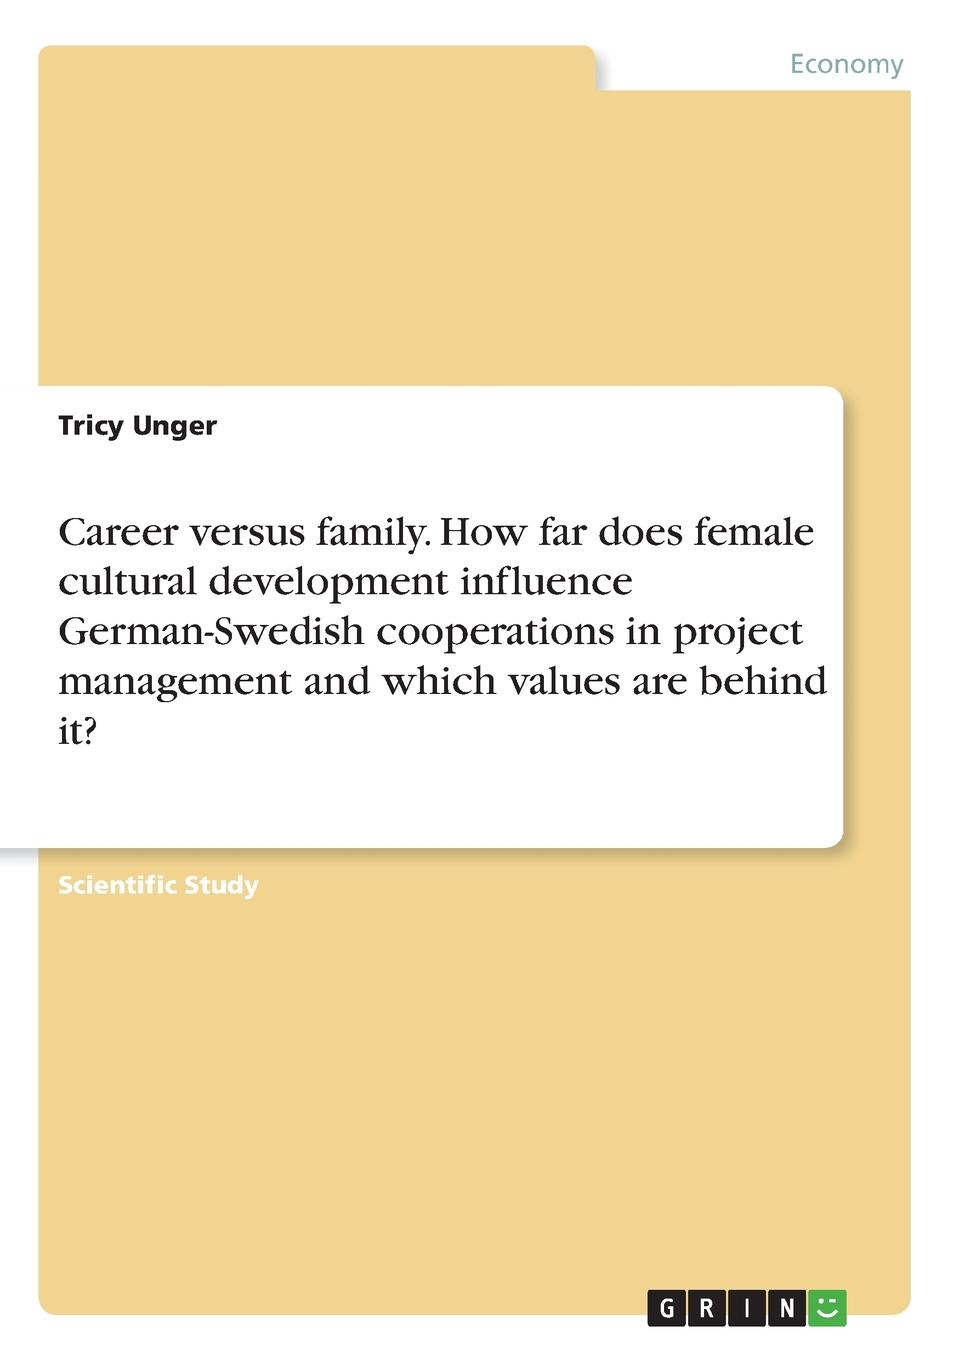 Tricy Unger Career versus family. How far does female cultural development influence German-Swedish cooperations in project management and which values are behind it. environmental values in american culture paper